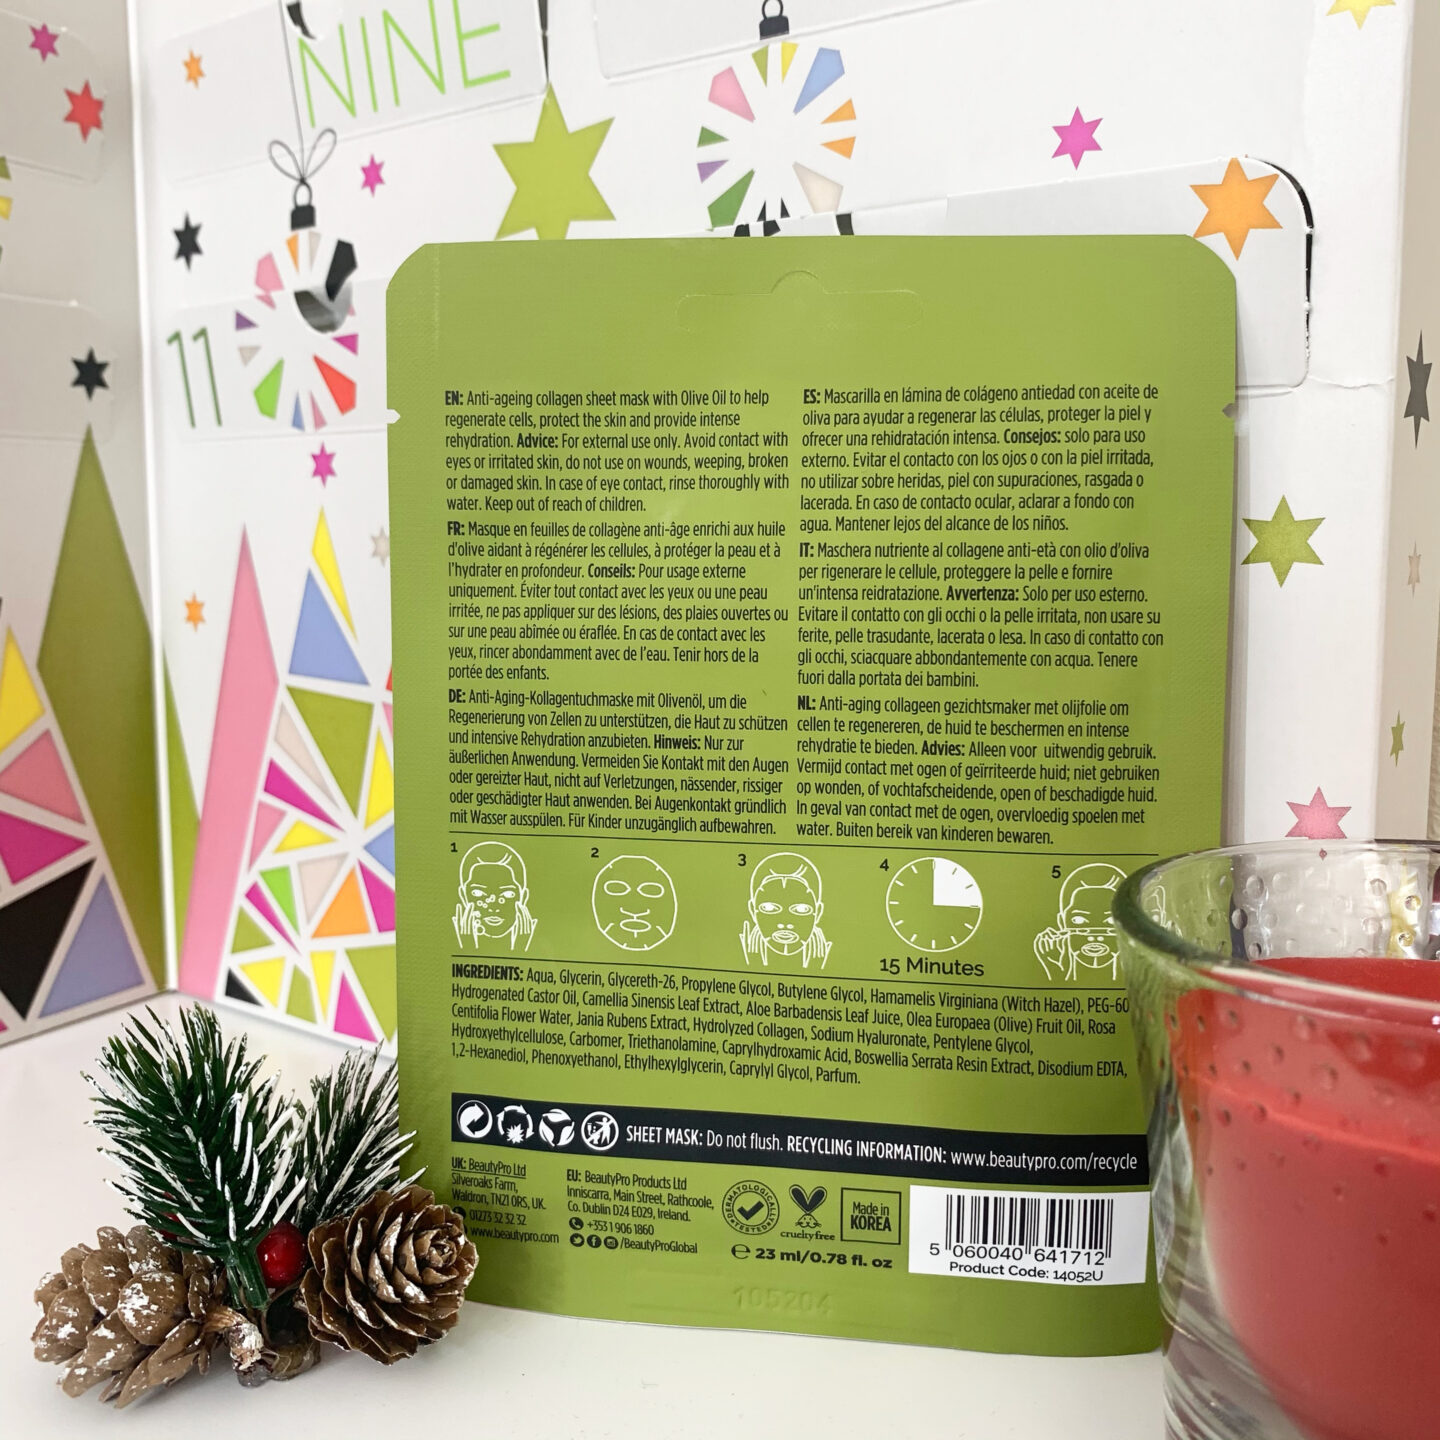 Nourishing Sheet Mask  Beauty Pro 12 Days of Christmask Advent Calendar 2020 - Miss Boux